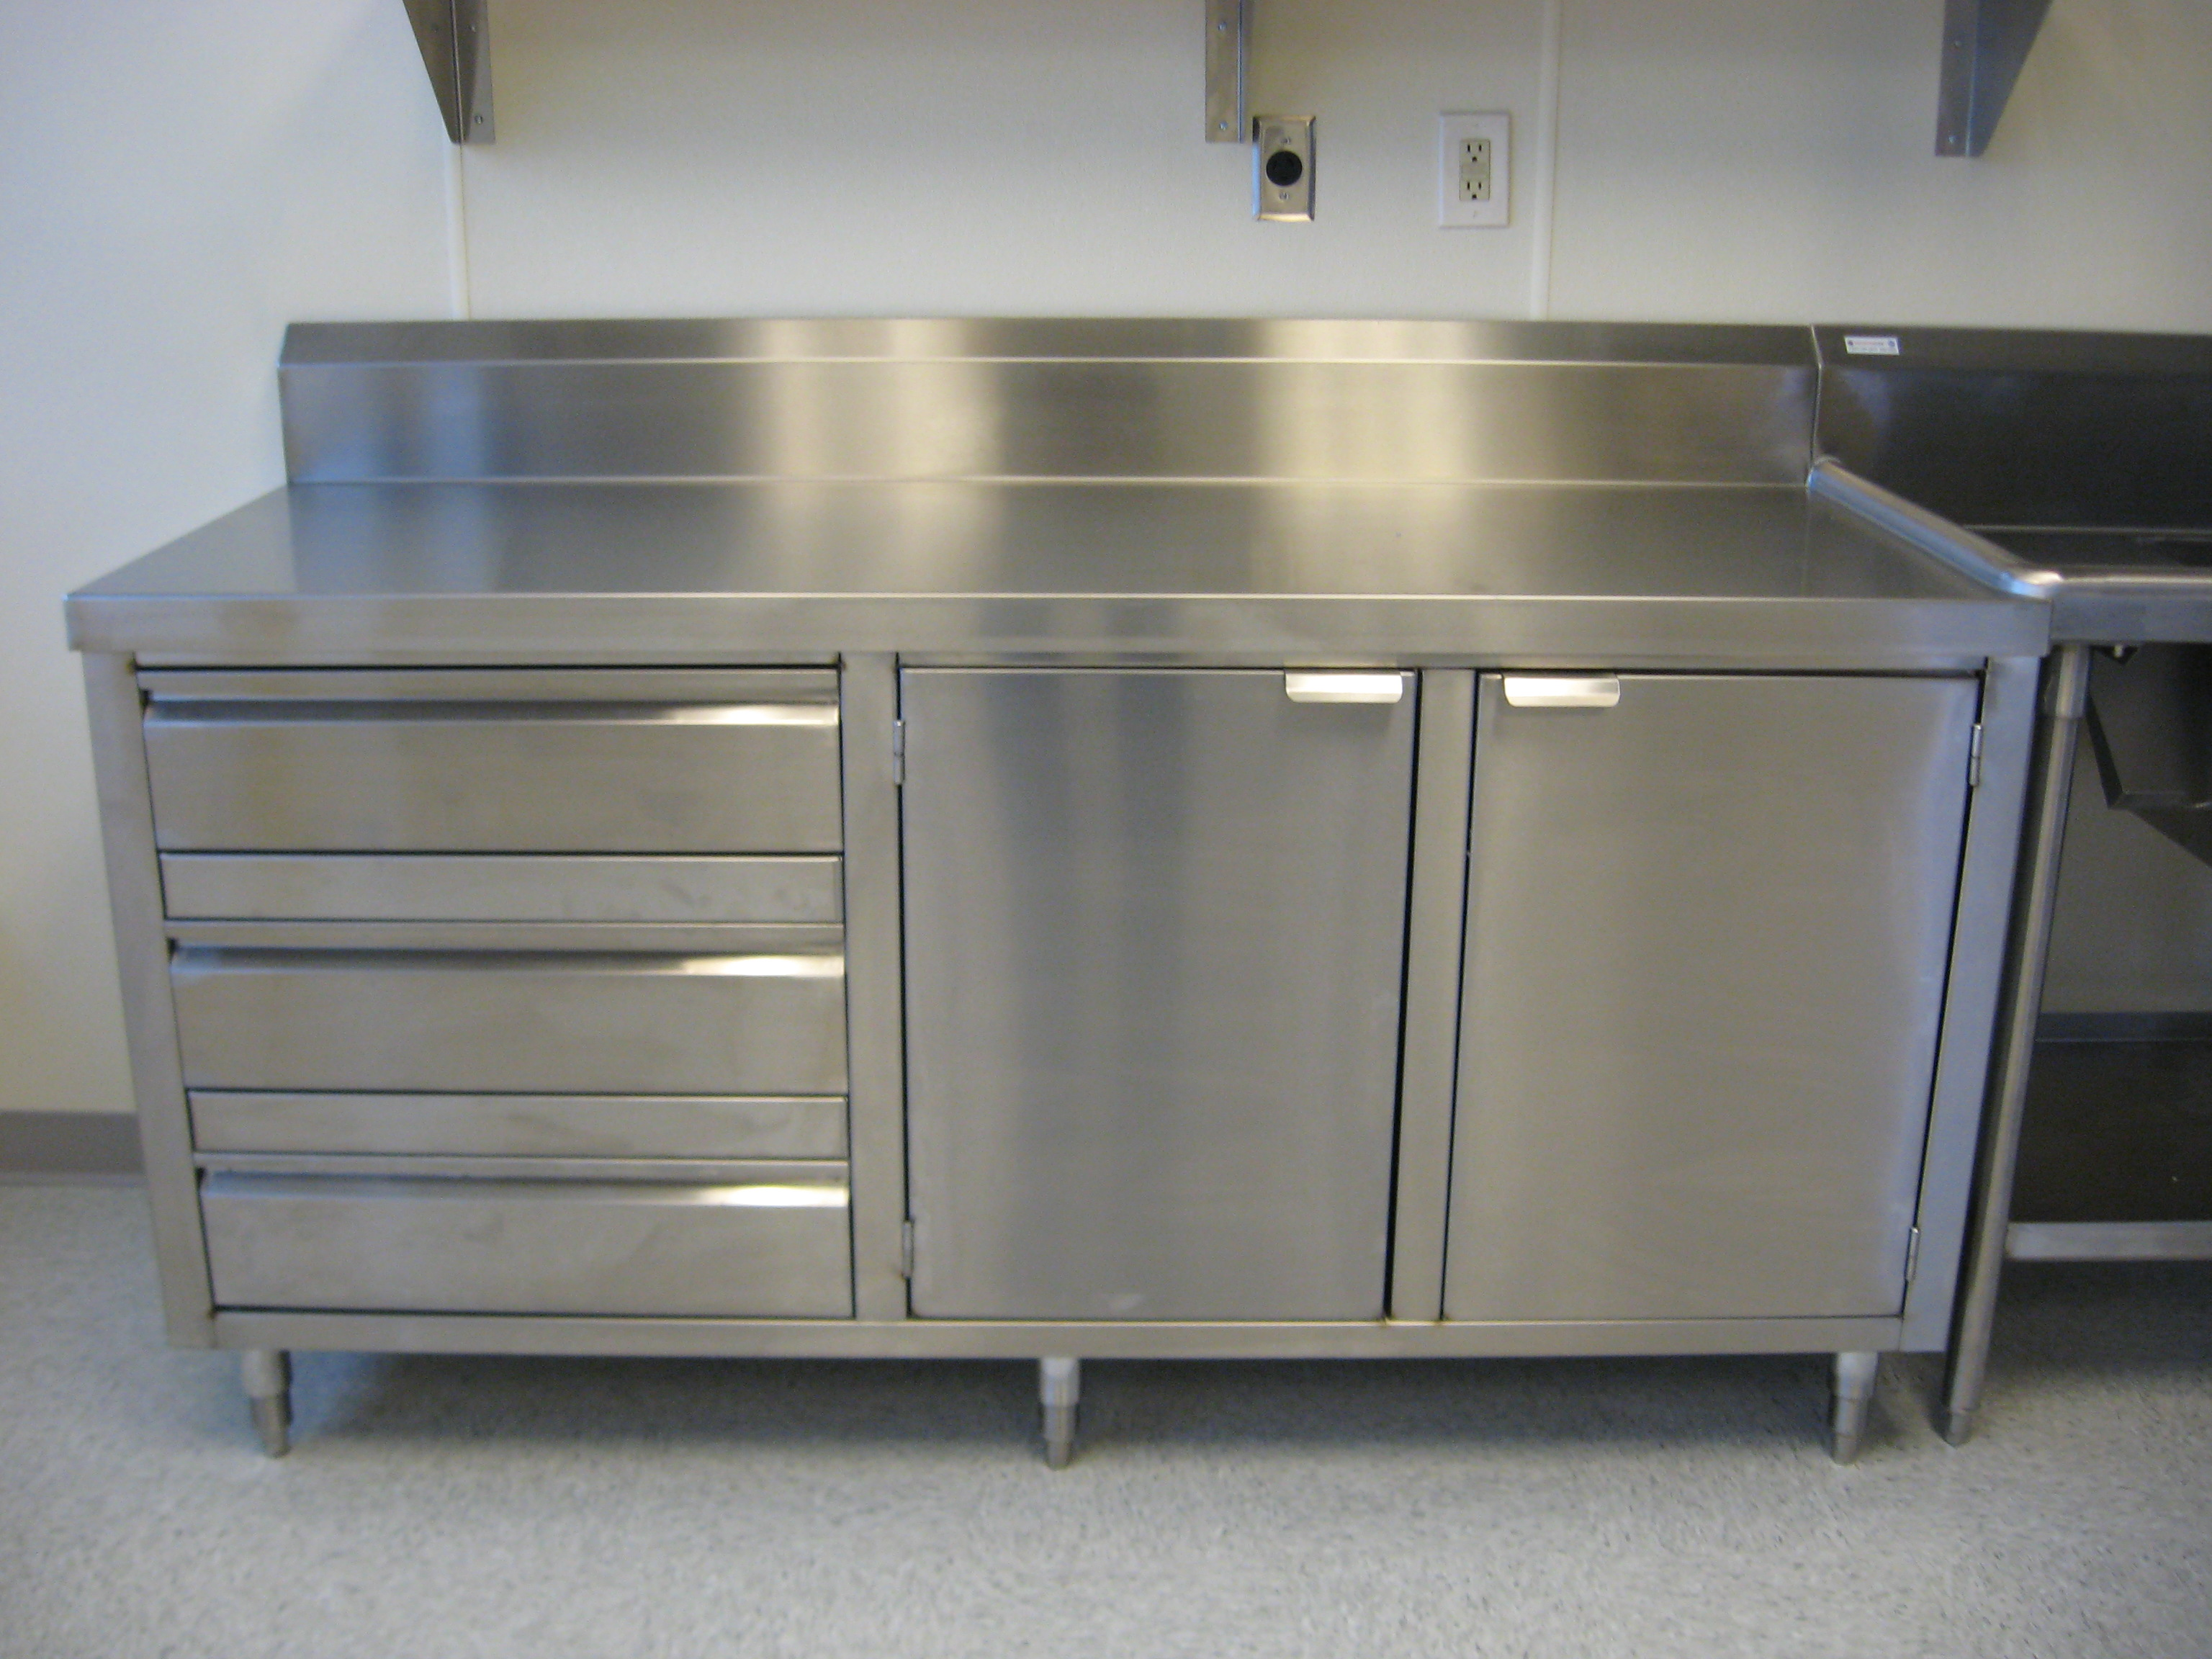 L Shaped Kitchen Base Cabinet Custom Stainless Dish Cabinet